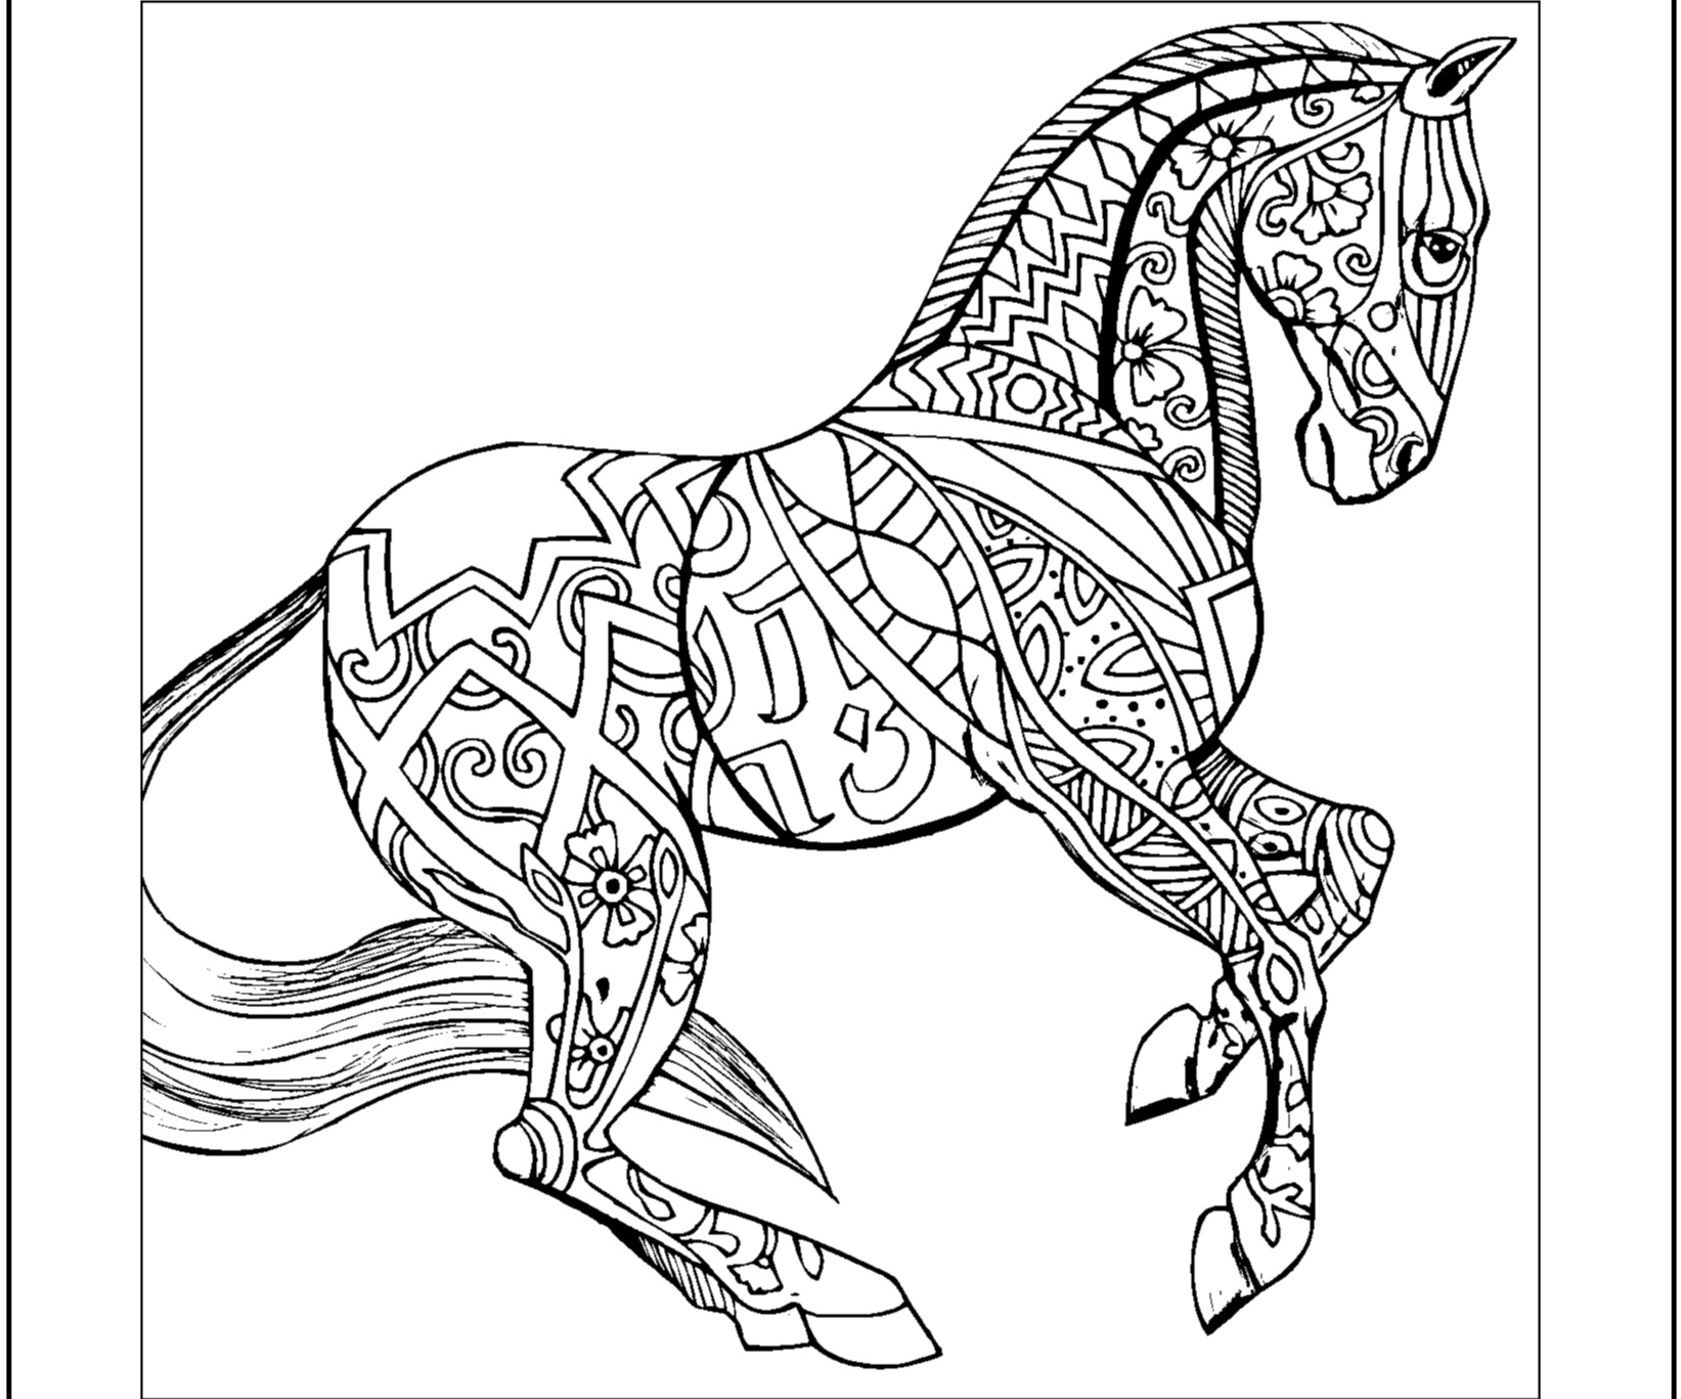 cool horse coloring pages awesome coloring page 23 09 2015044544 01 horse horse cool pages coloring